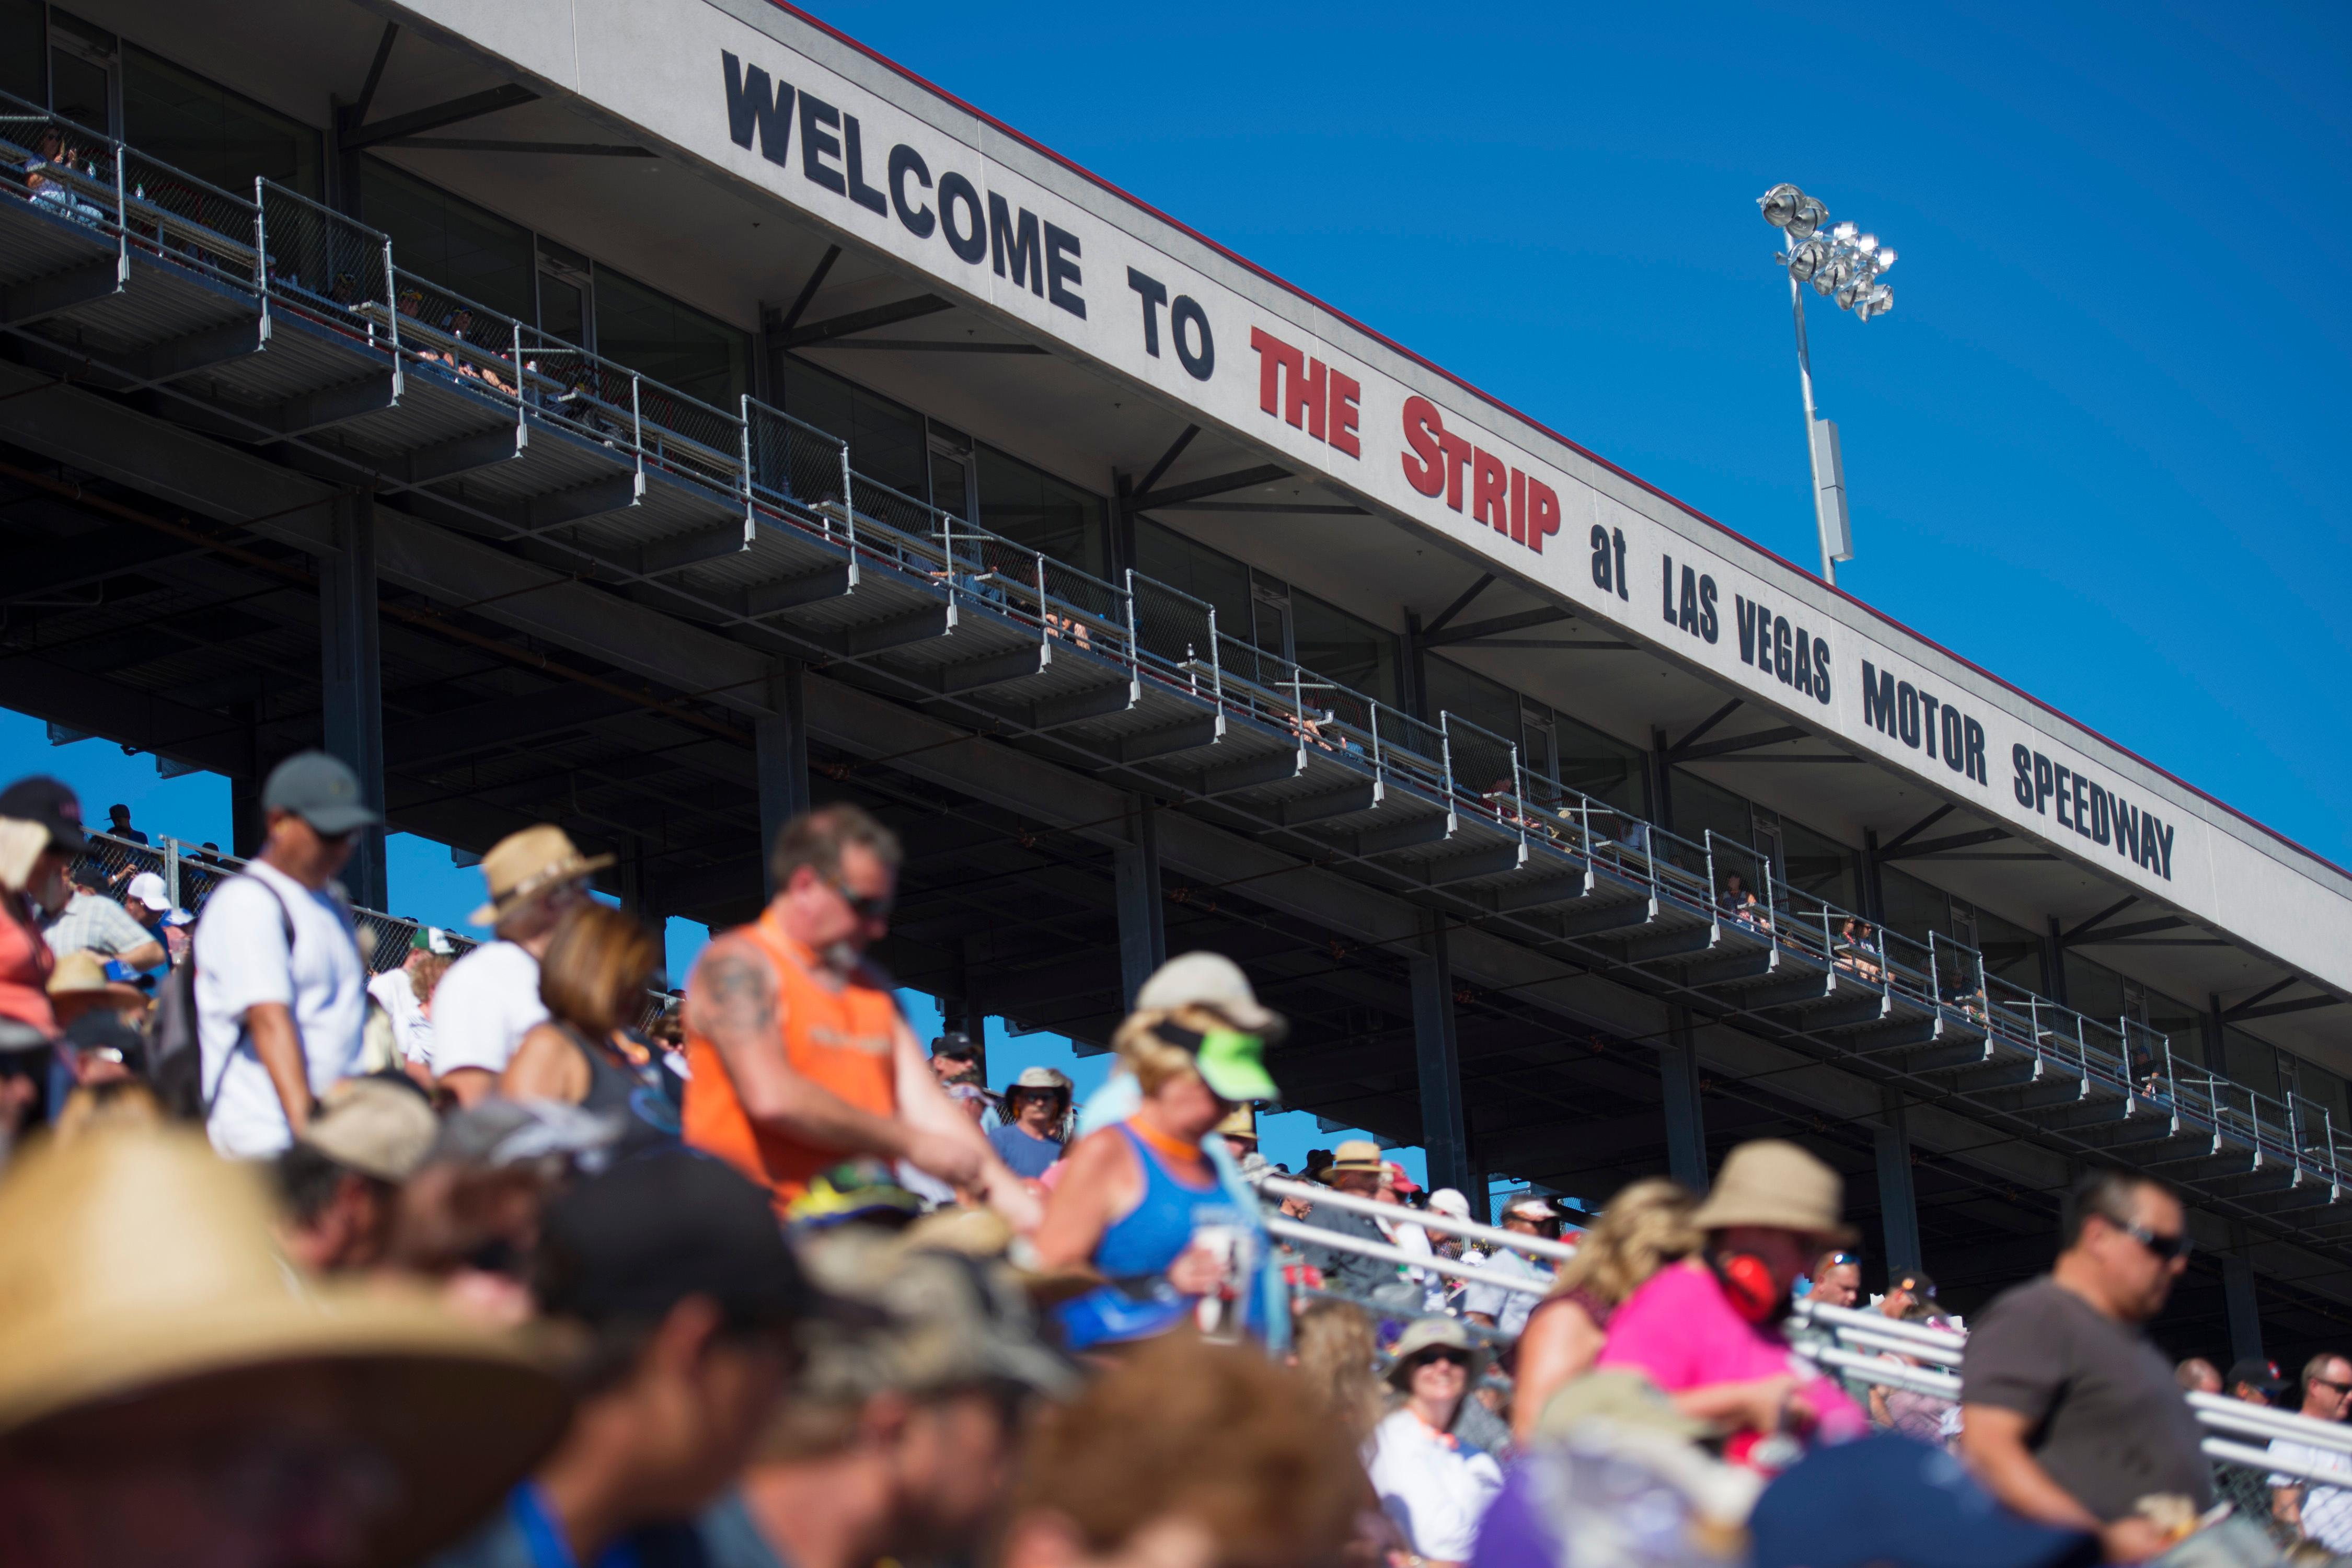 A sell out crowd watches the action at the NHRA Toyota Nationals Sunday, October 29, 2017, at The Strip at the Las Vegas Motor Speedway. CREDIT: Sam Morris/Las Vegas News Bureau